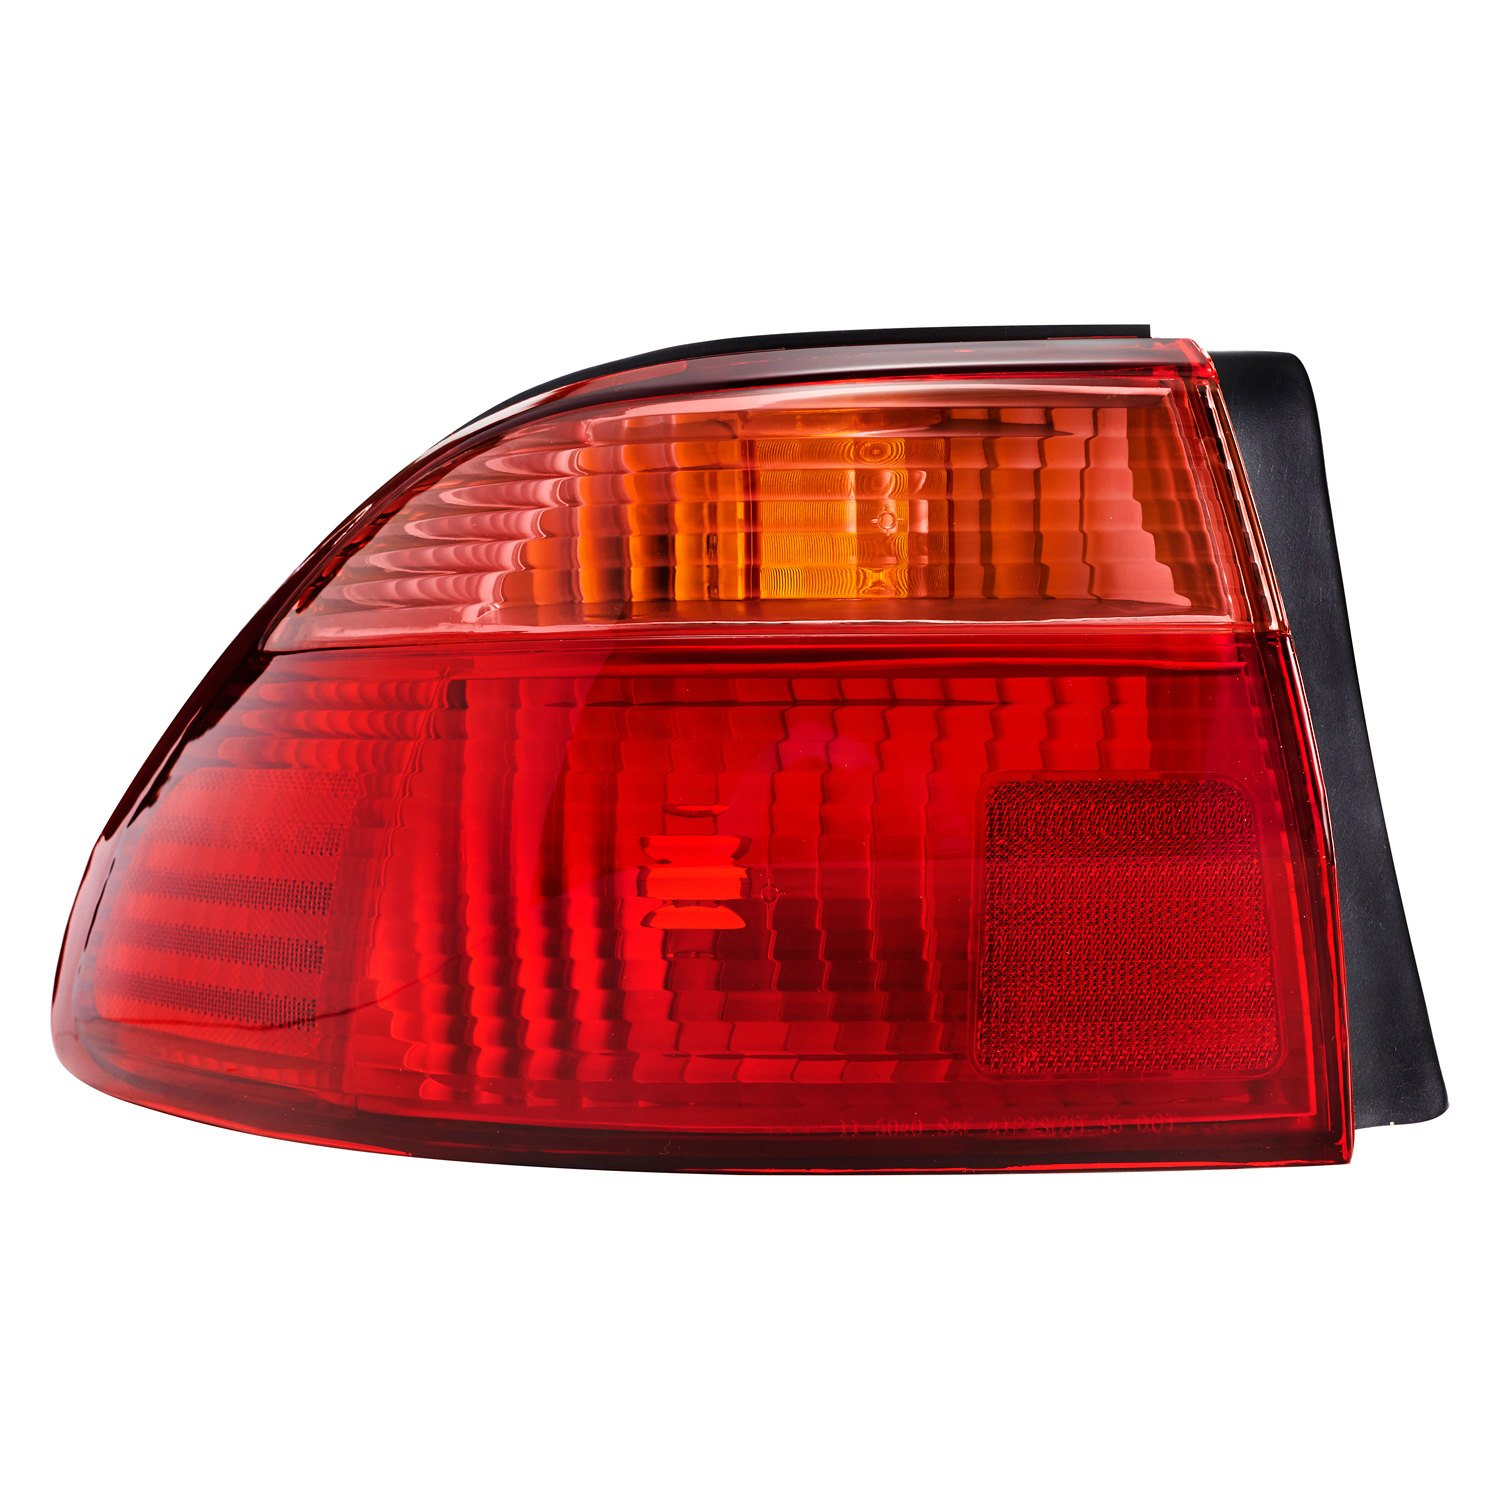 tyc honda accord 1998 replacement tail light. Black Bedroom Furniture Sets. Home Design Ideas